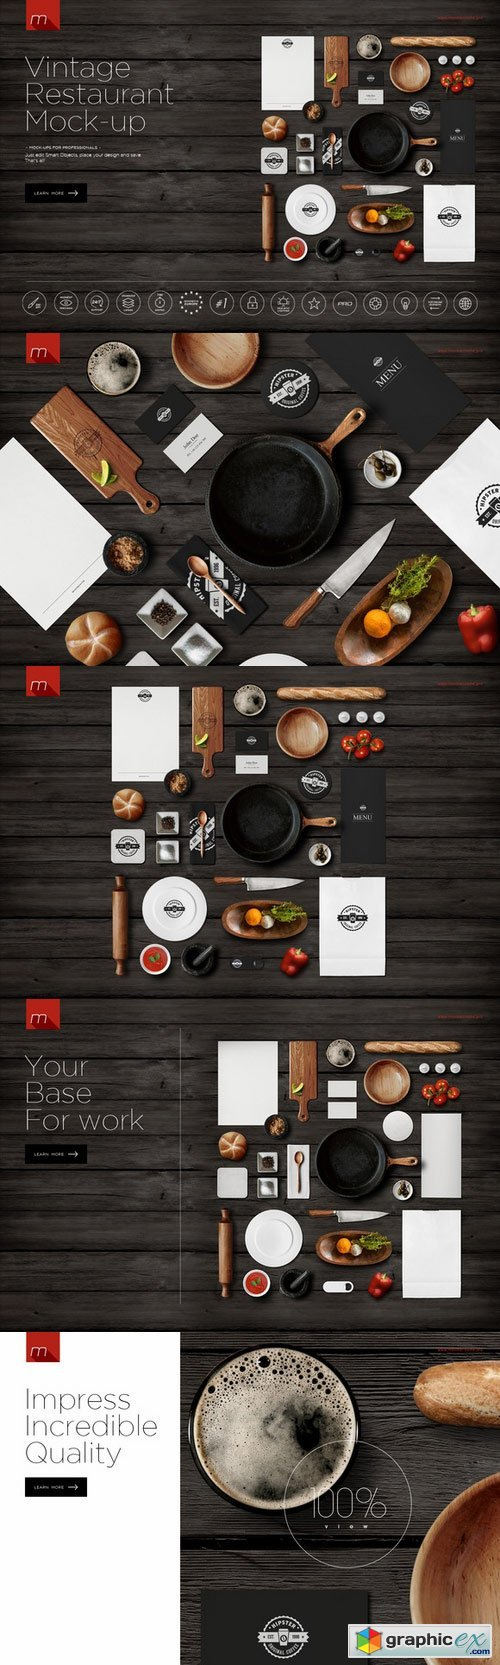 Restaurant Identity Branding Mock-up 450114